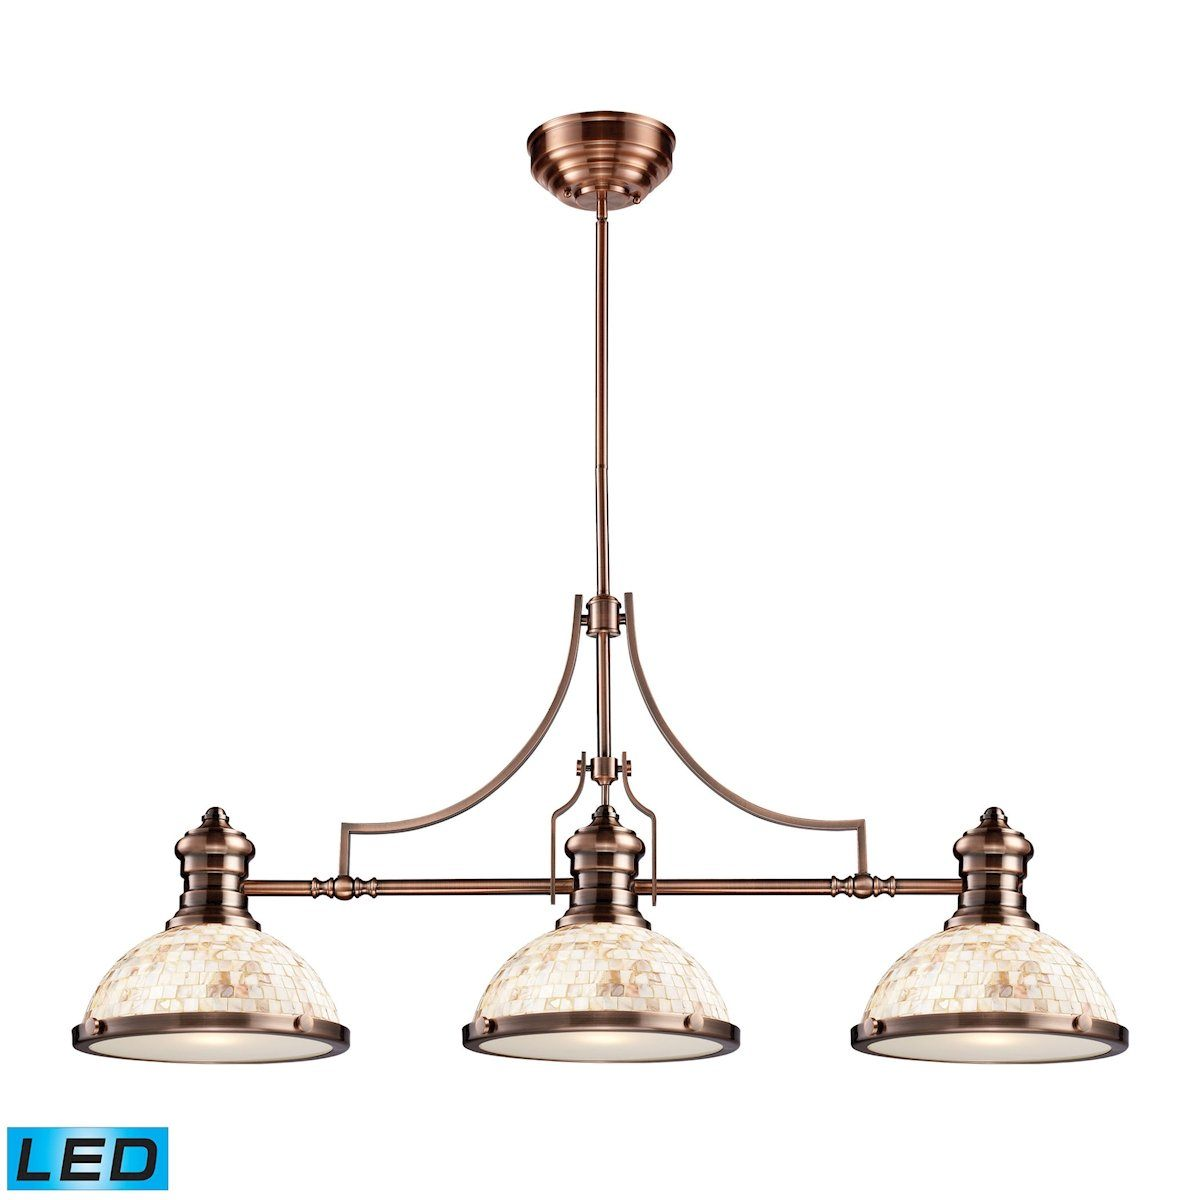 Chadwick 3 Light LED Billiard In Antique Copper And Cappa Shells Ceiling Elk Lighting